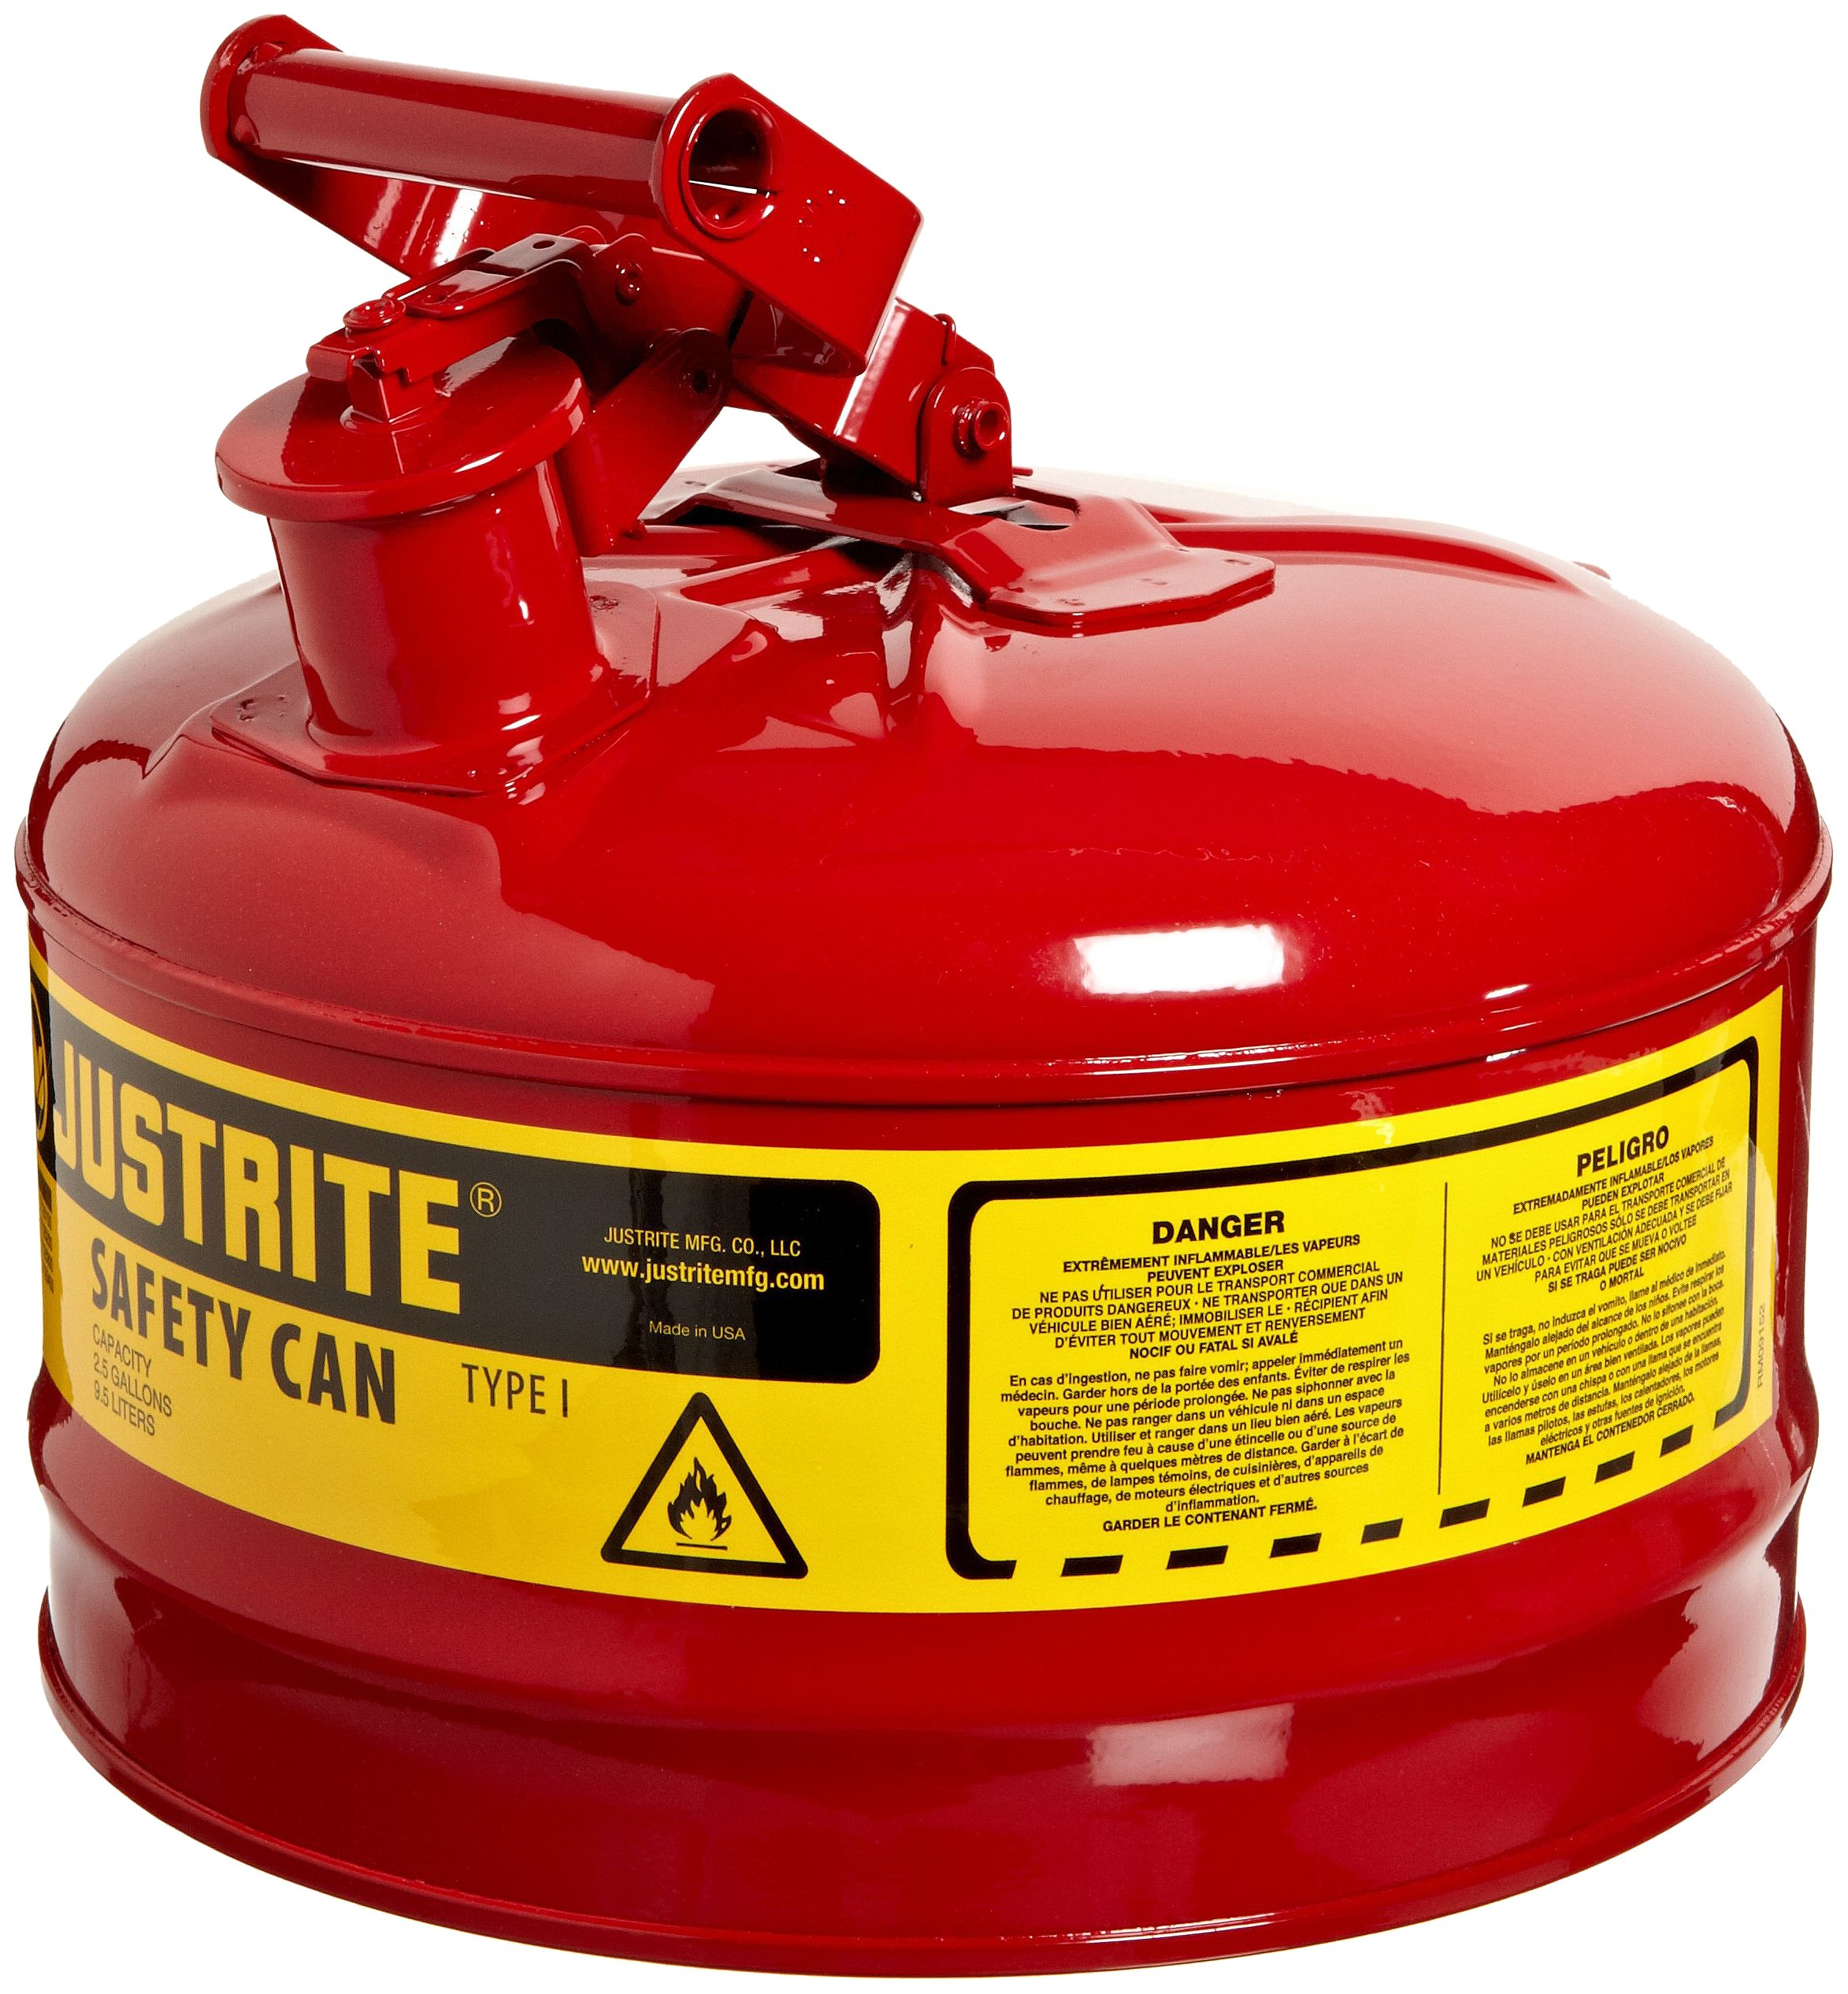 Justrite 7125100 2 Gallon, 11.75'' OD x 11.50'' H Galvanized Steel Type I Red Safety Can